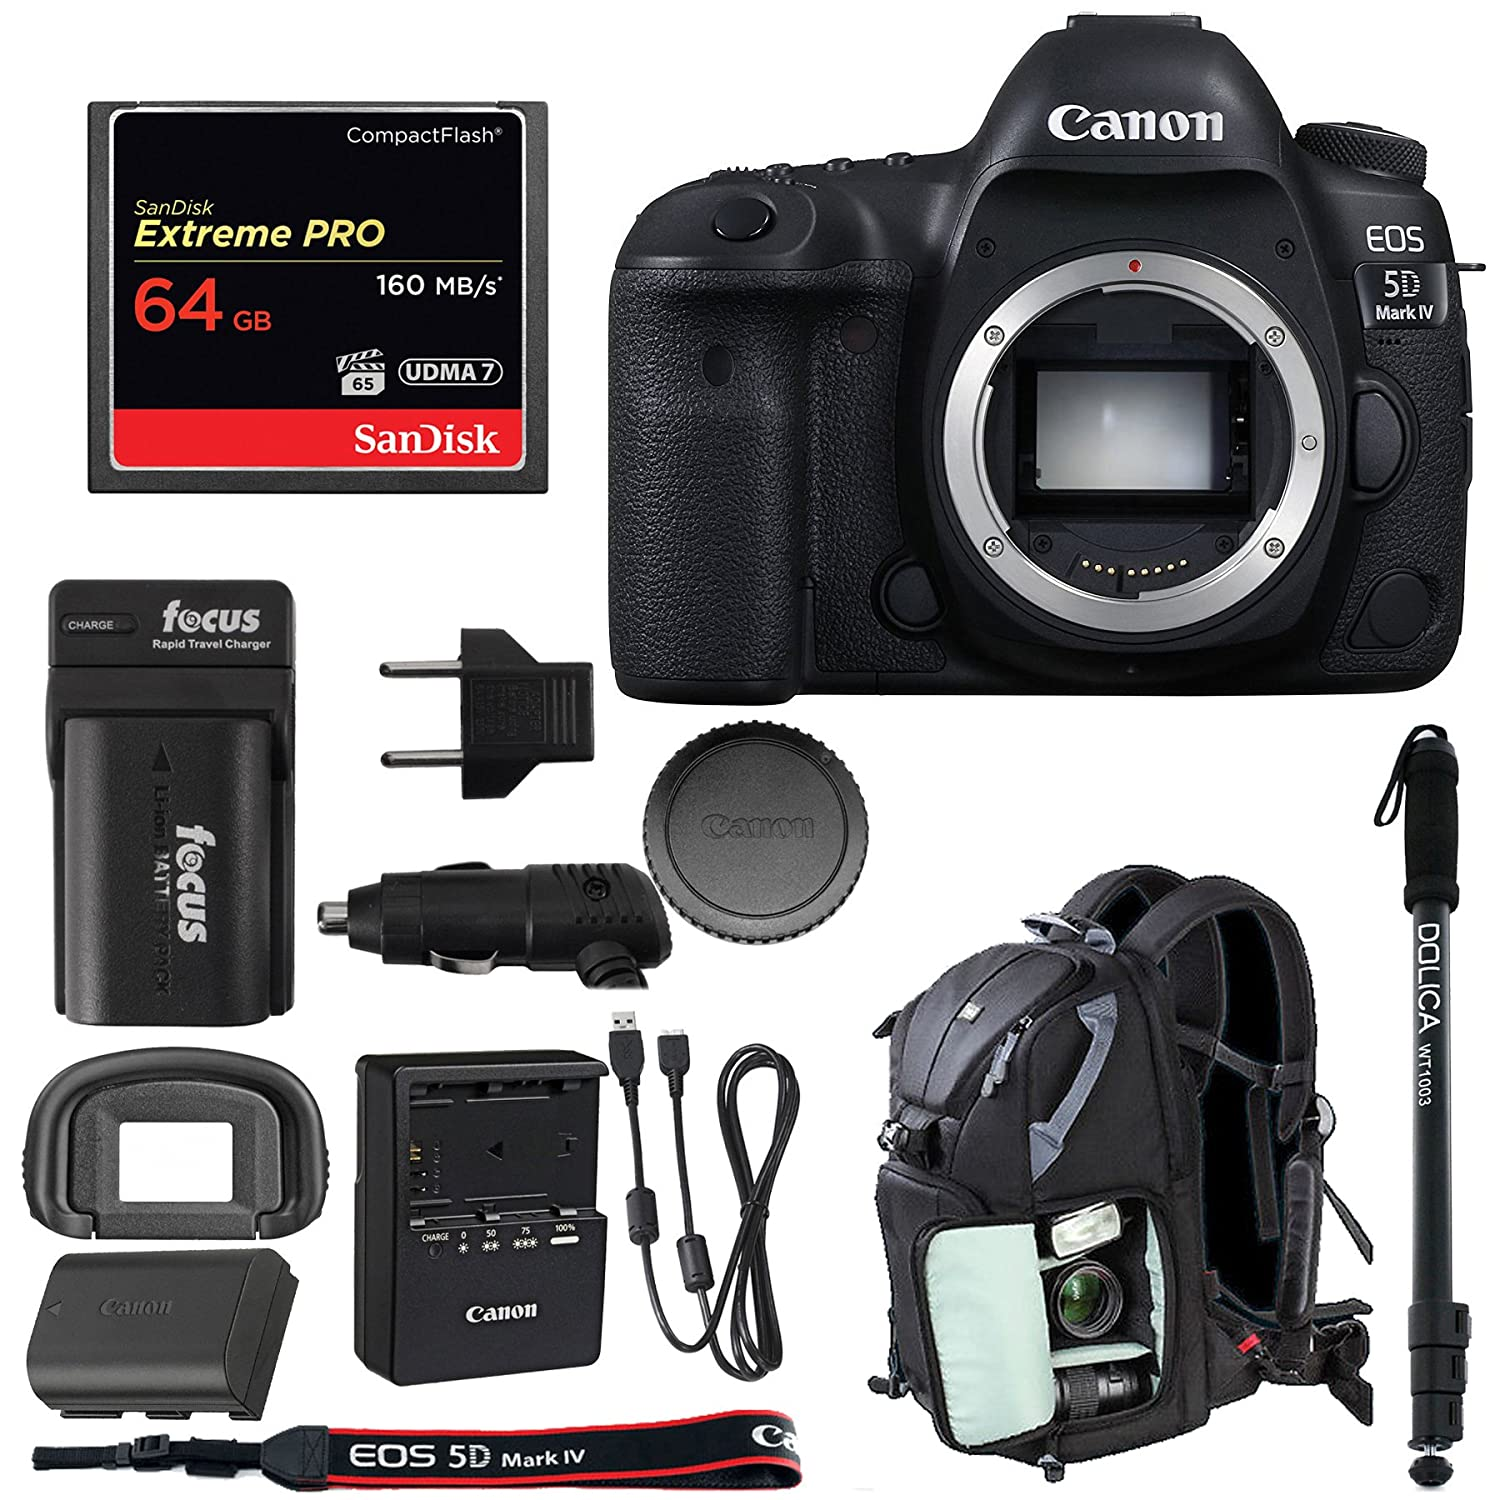 Canon Eos 5d Mark Iv Dslr Camera Body Only W 64gb 4 Compact Flash Card Bundle Photo